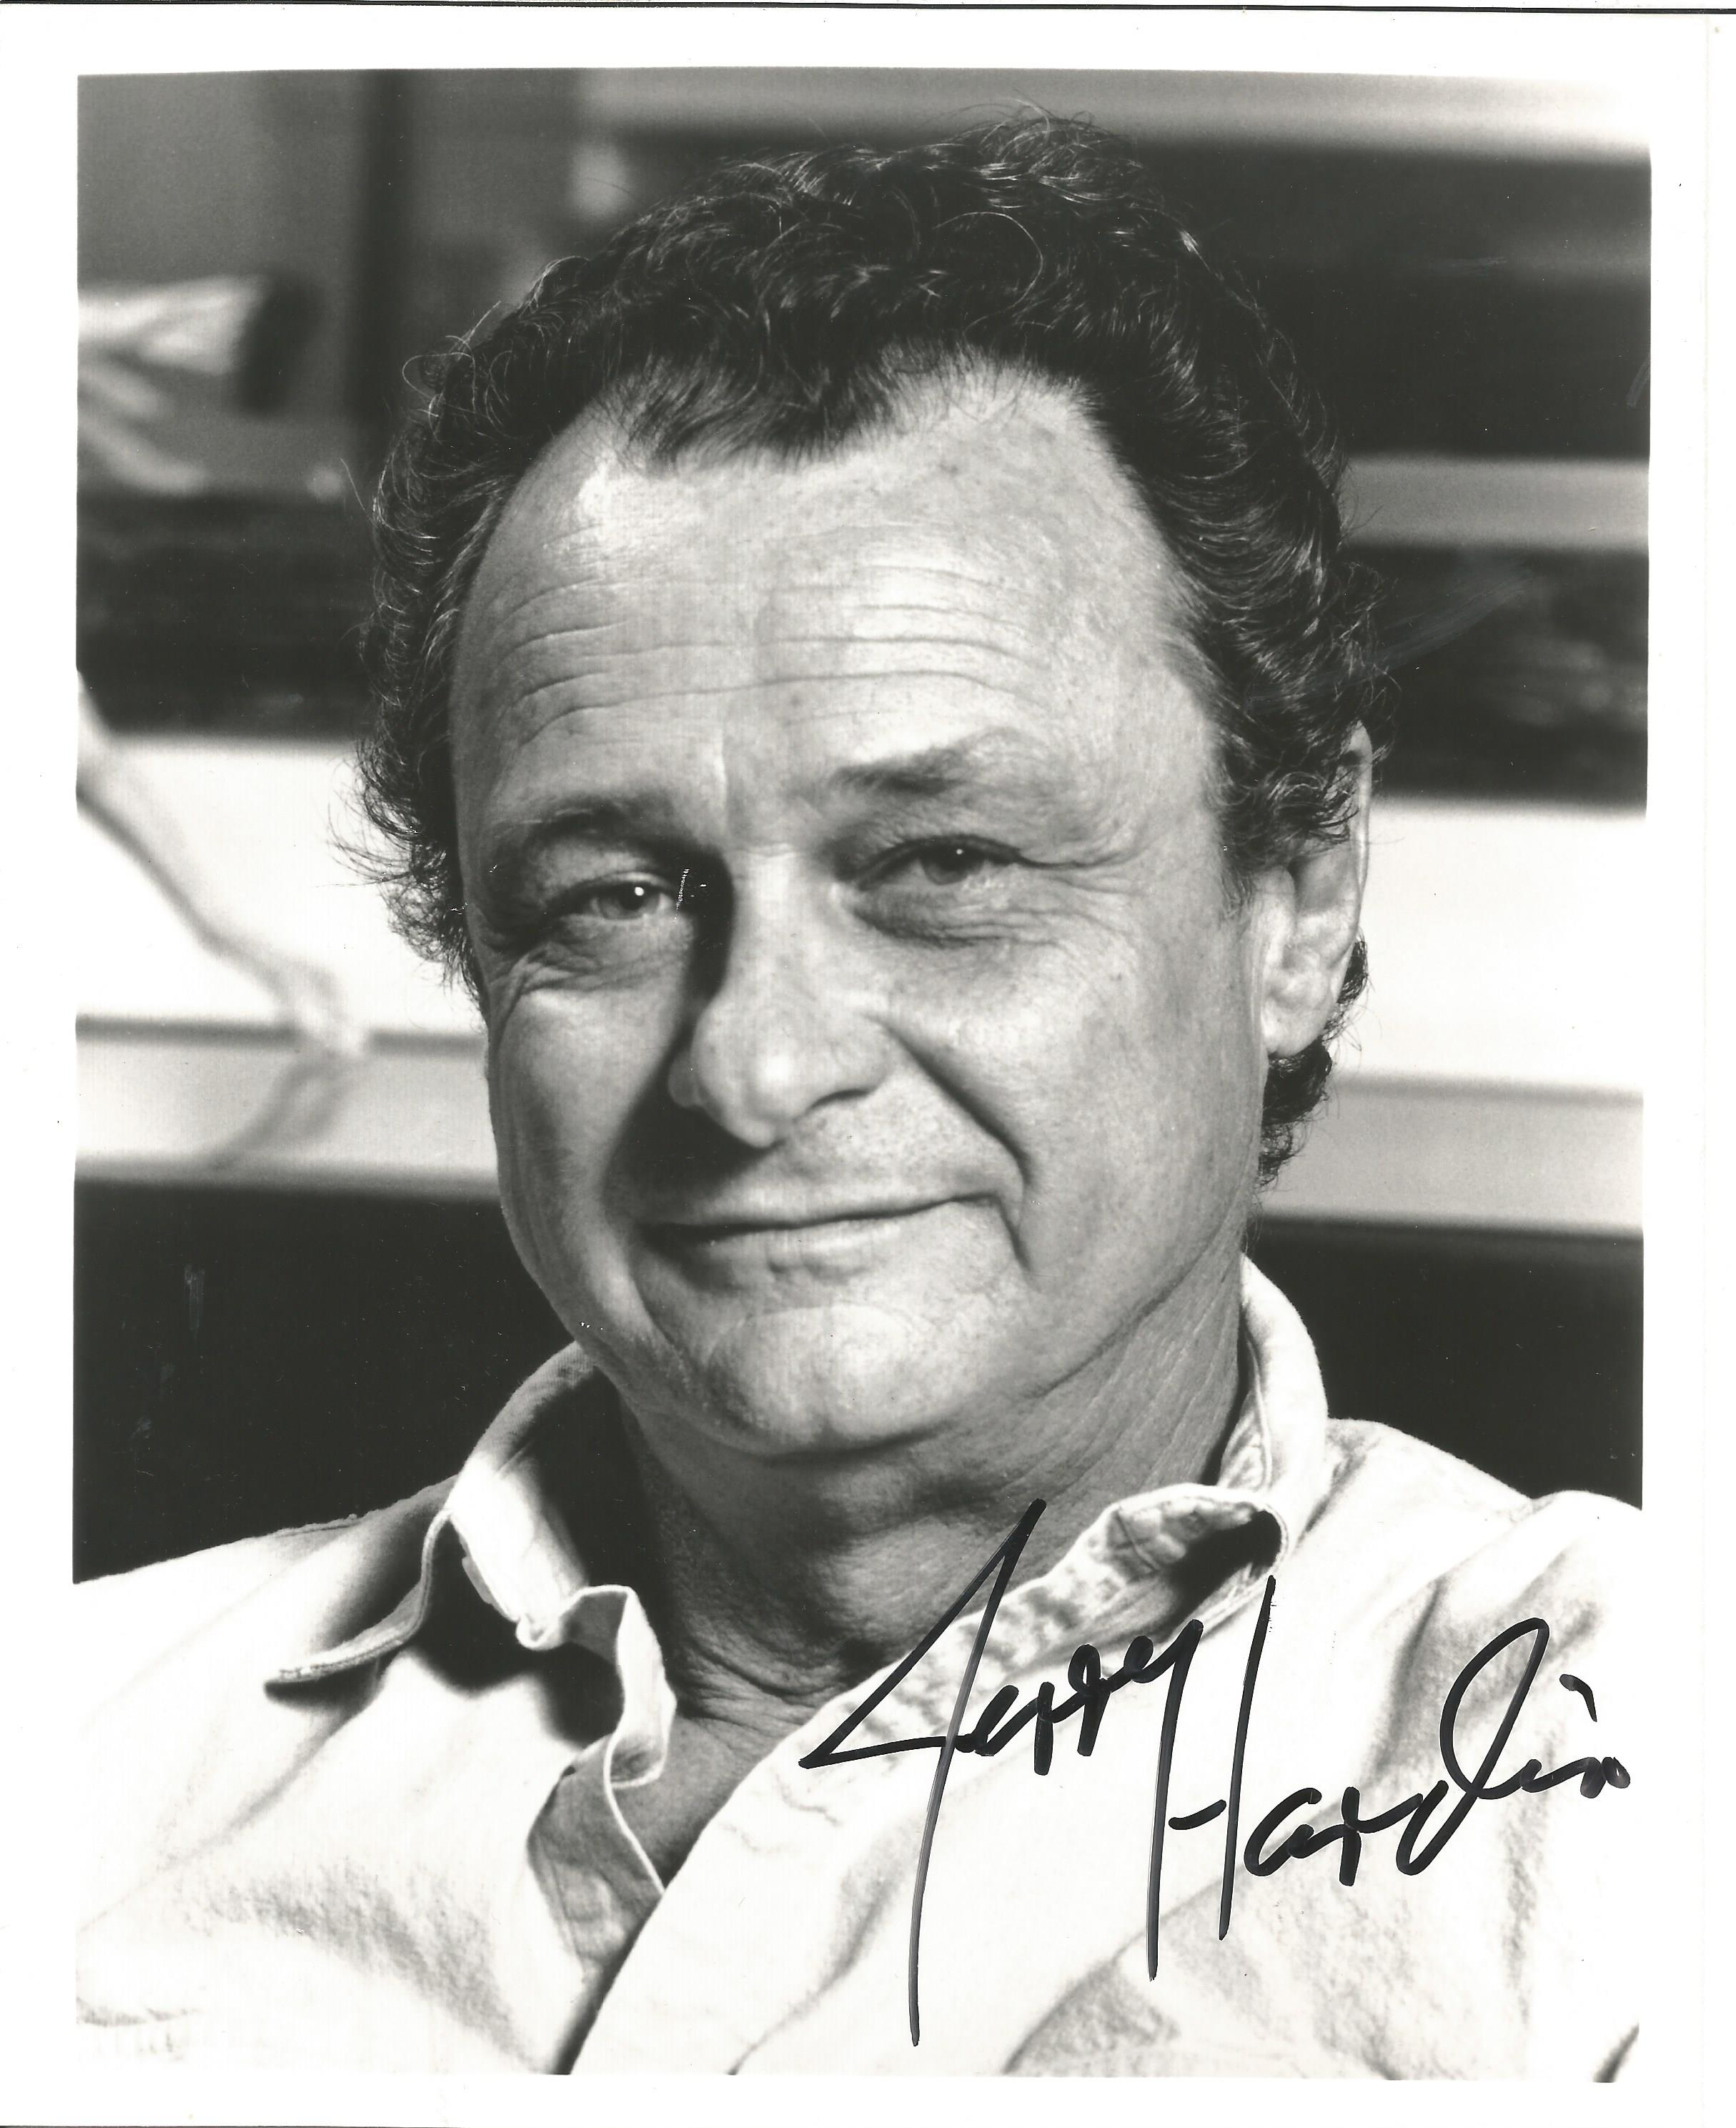 Jerry Hardin signed 10x8 black and white photo. Jerry Hardin (born November 20, 1929) is an American